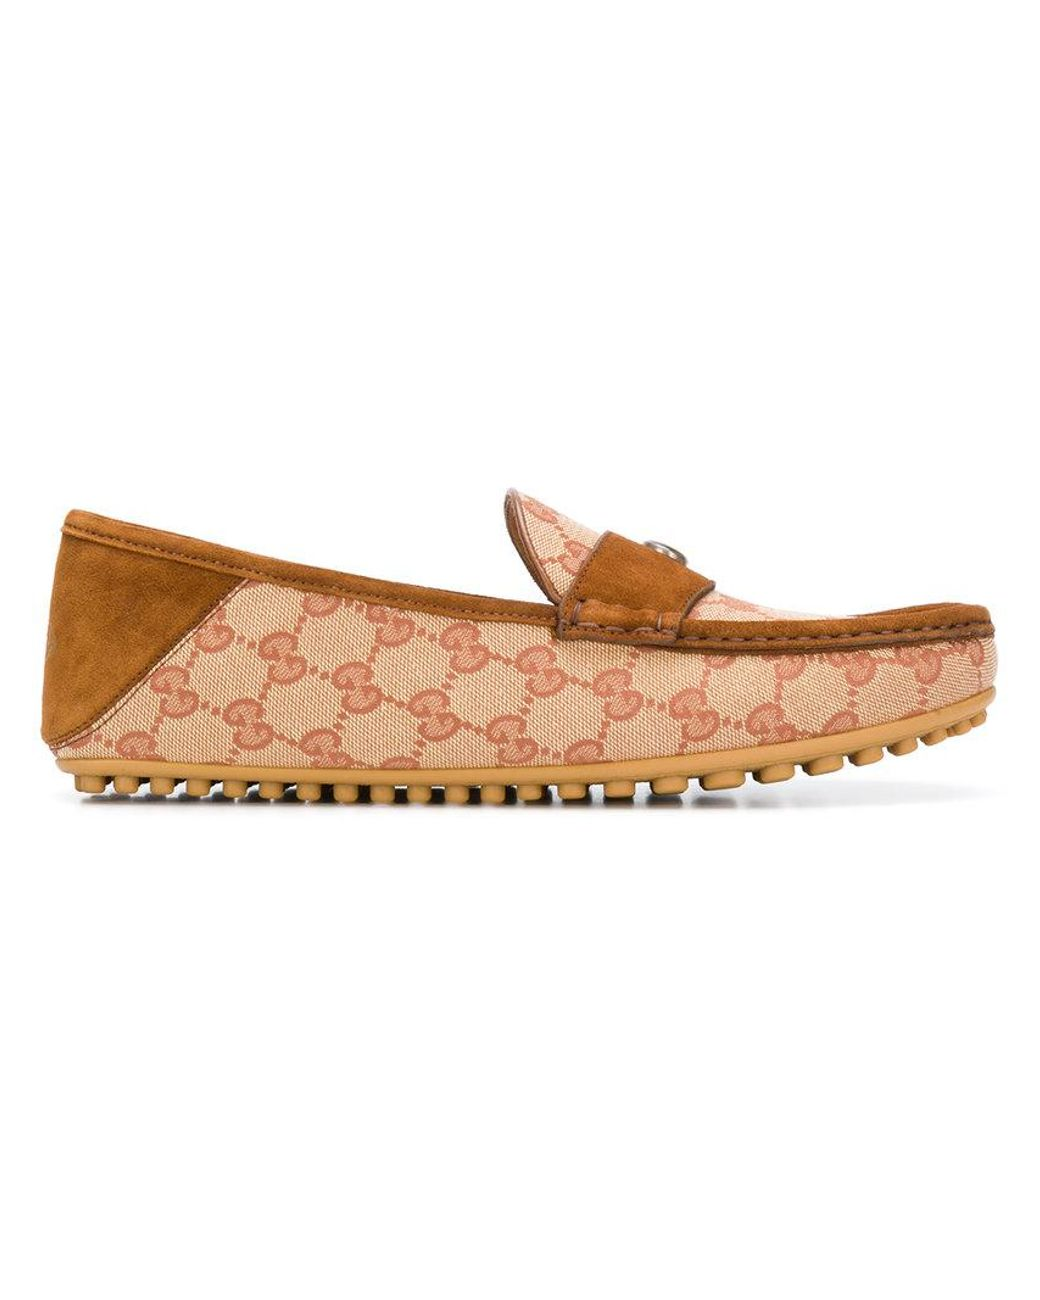 48c90f4e7 Gucci Logo Driving Loafers in Brown for Men - Lyst